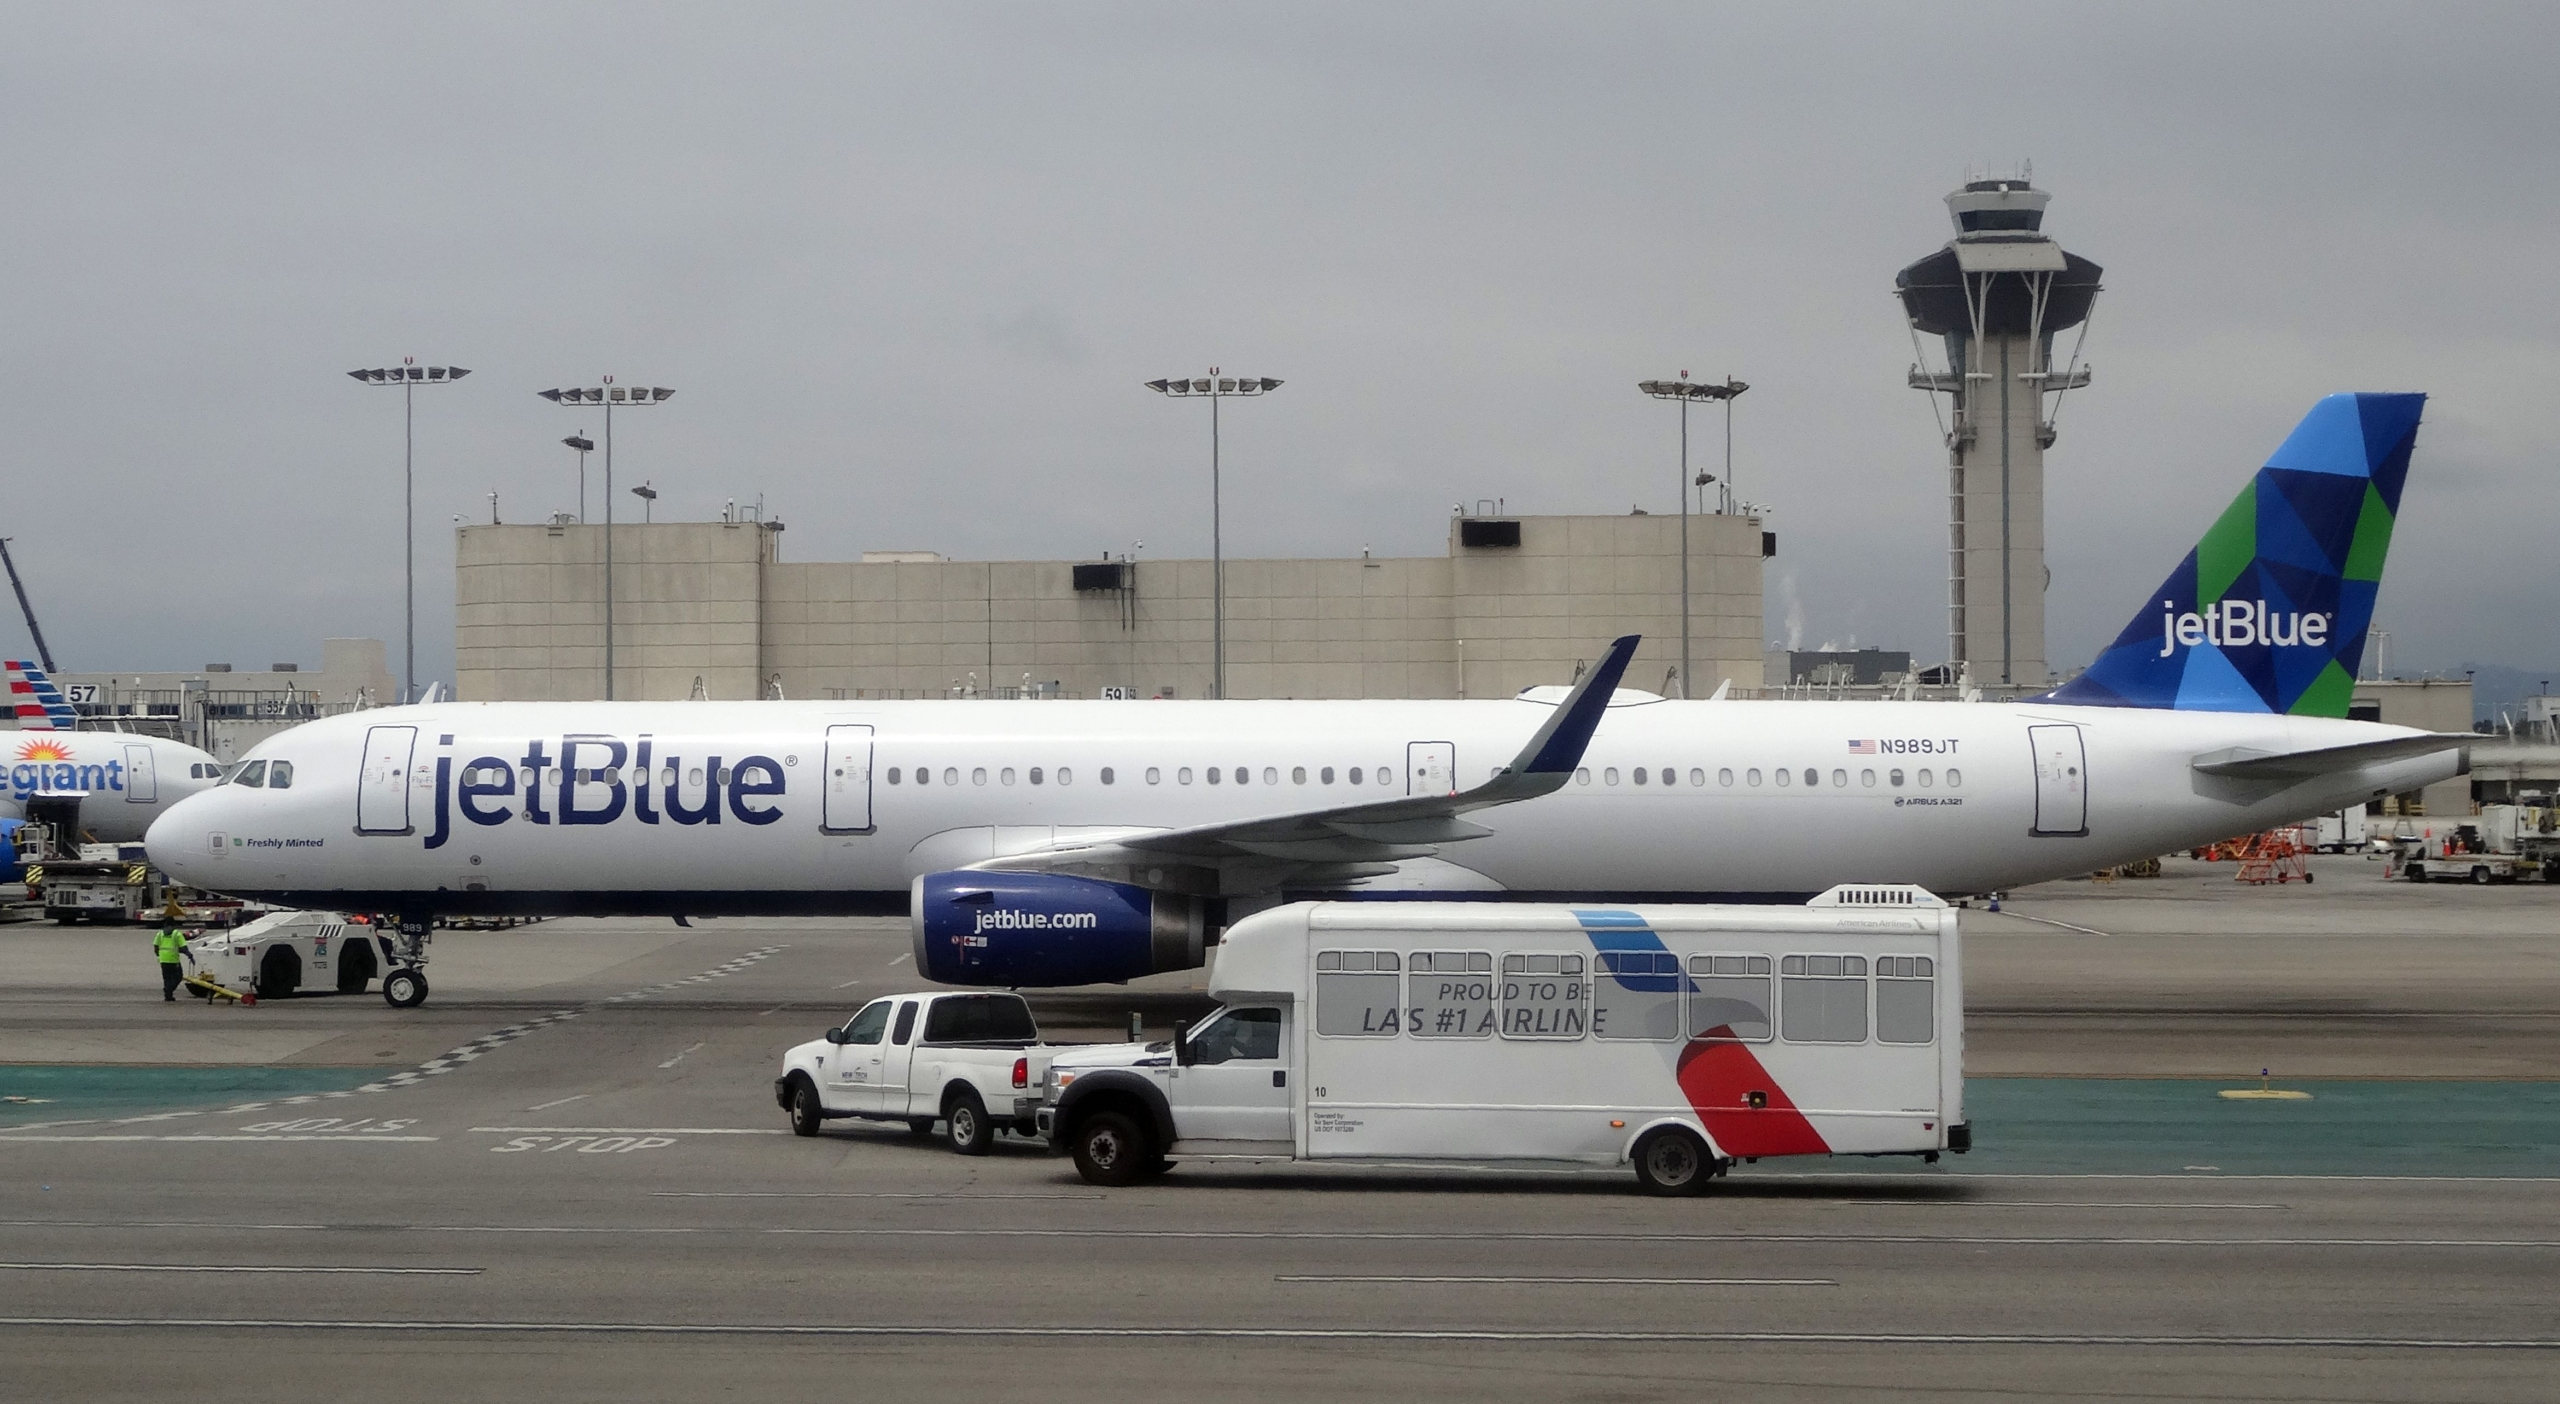 JetBlue Flight Landed In Newark With Small Fire